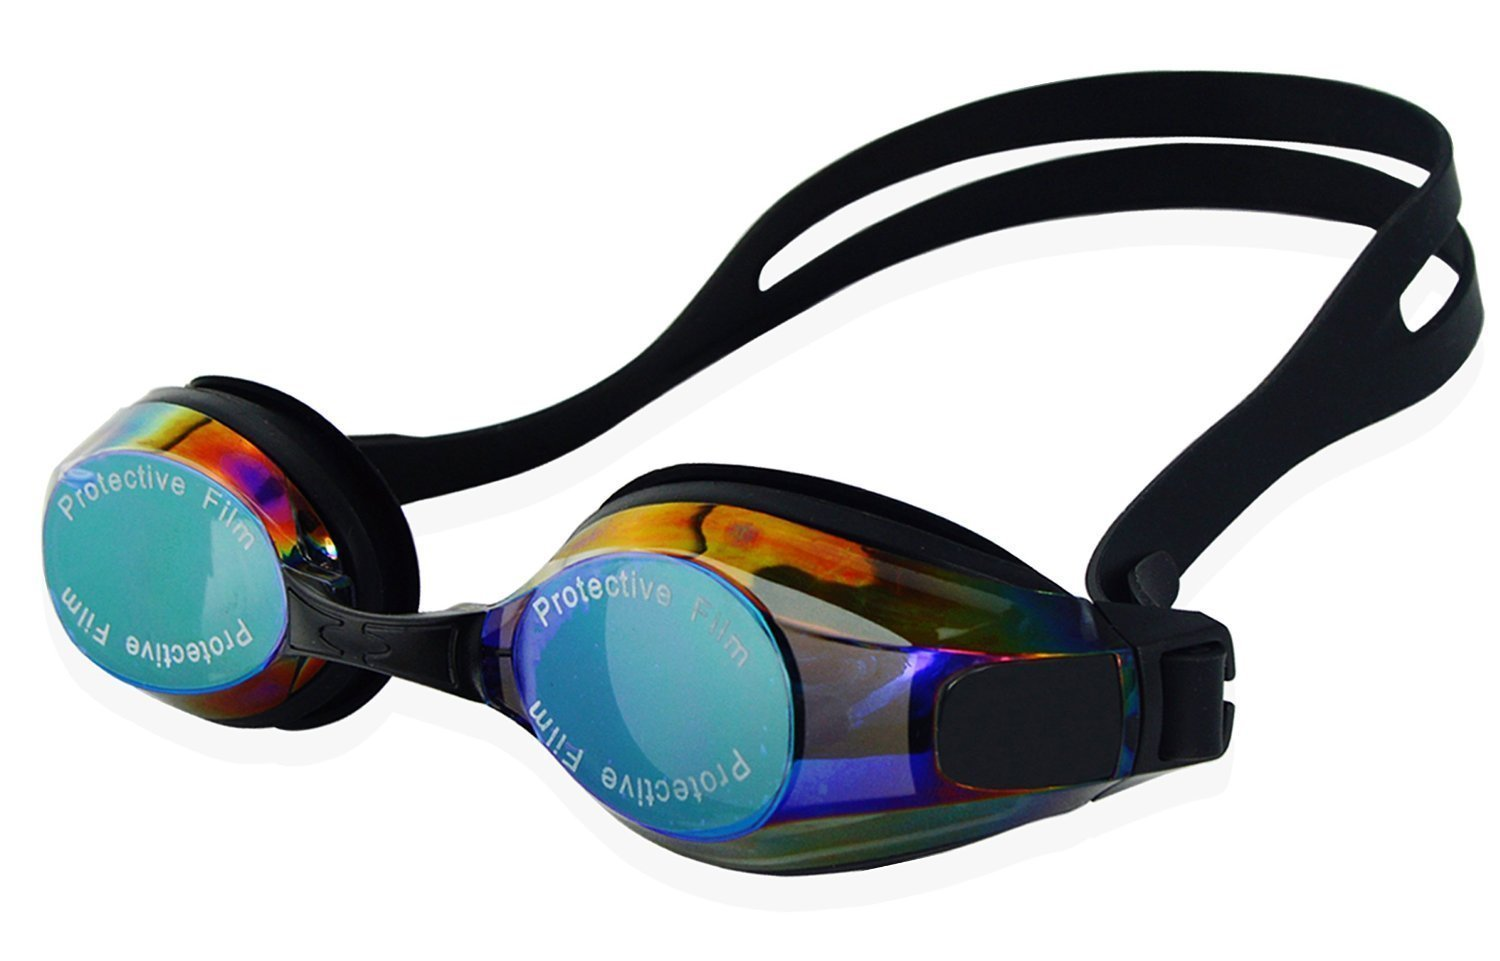 IPOW Swim Goggles Anti-fog Mirrored Lenses UV Protection Professional Swimming Goggle No Leaking Premium Plasting... by IPOW